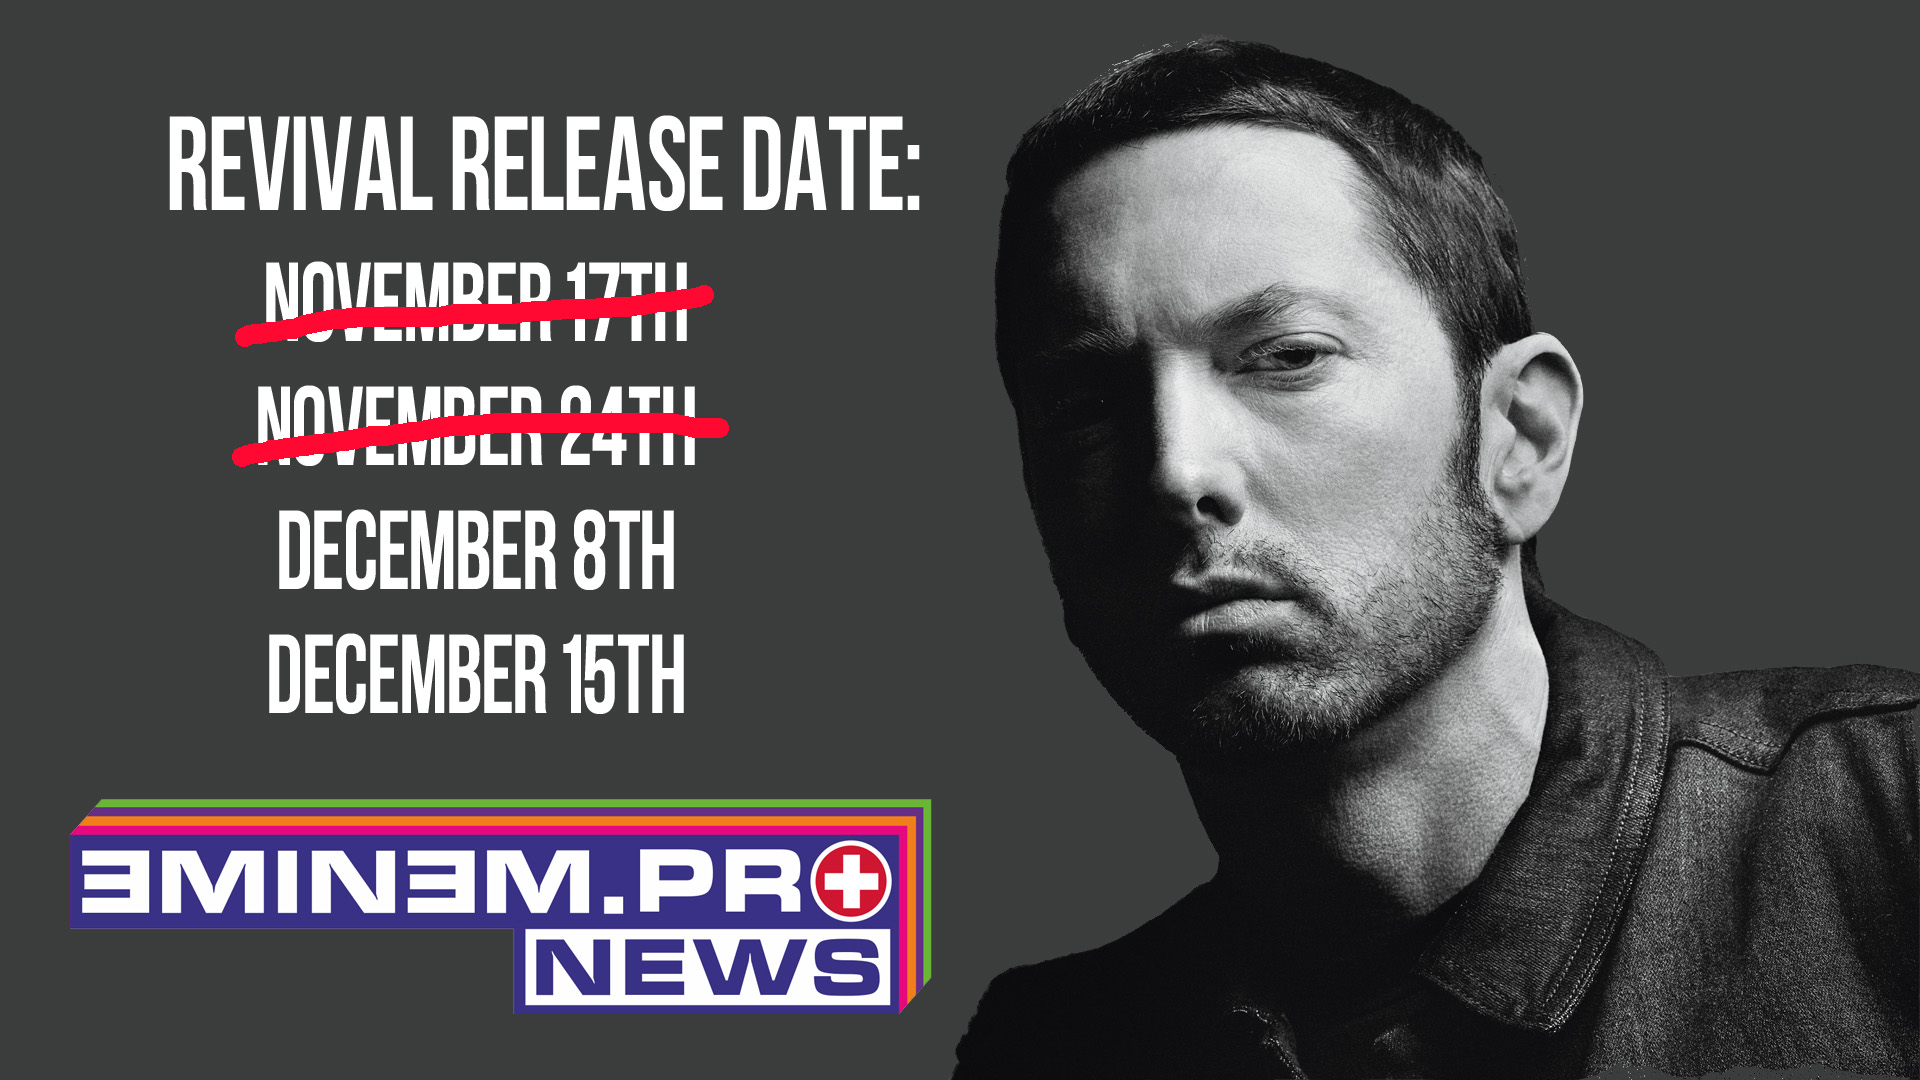 ePro News 32: When is Eminem dropping Revival? Target leaked the release date?